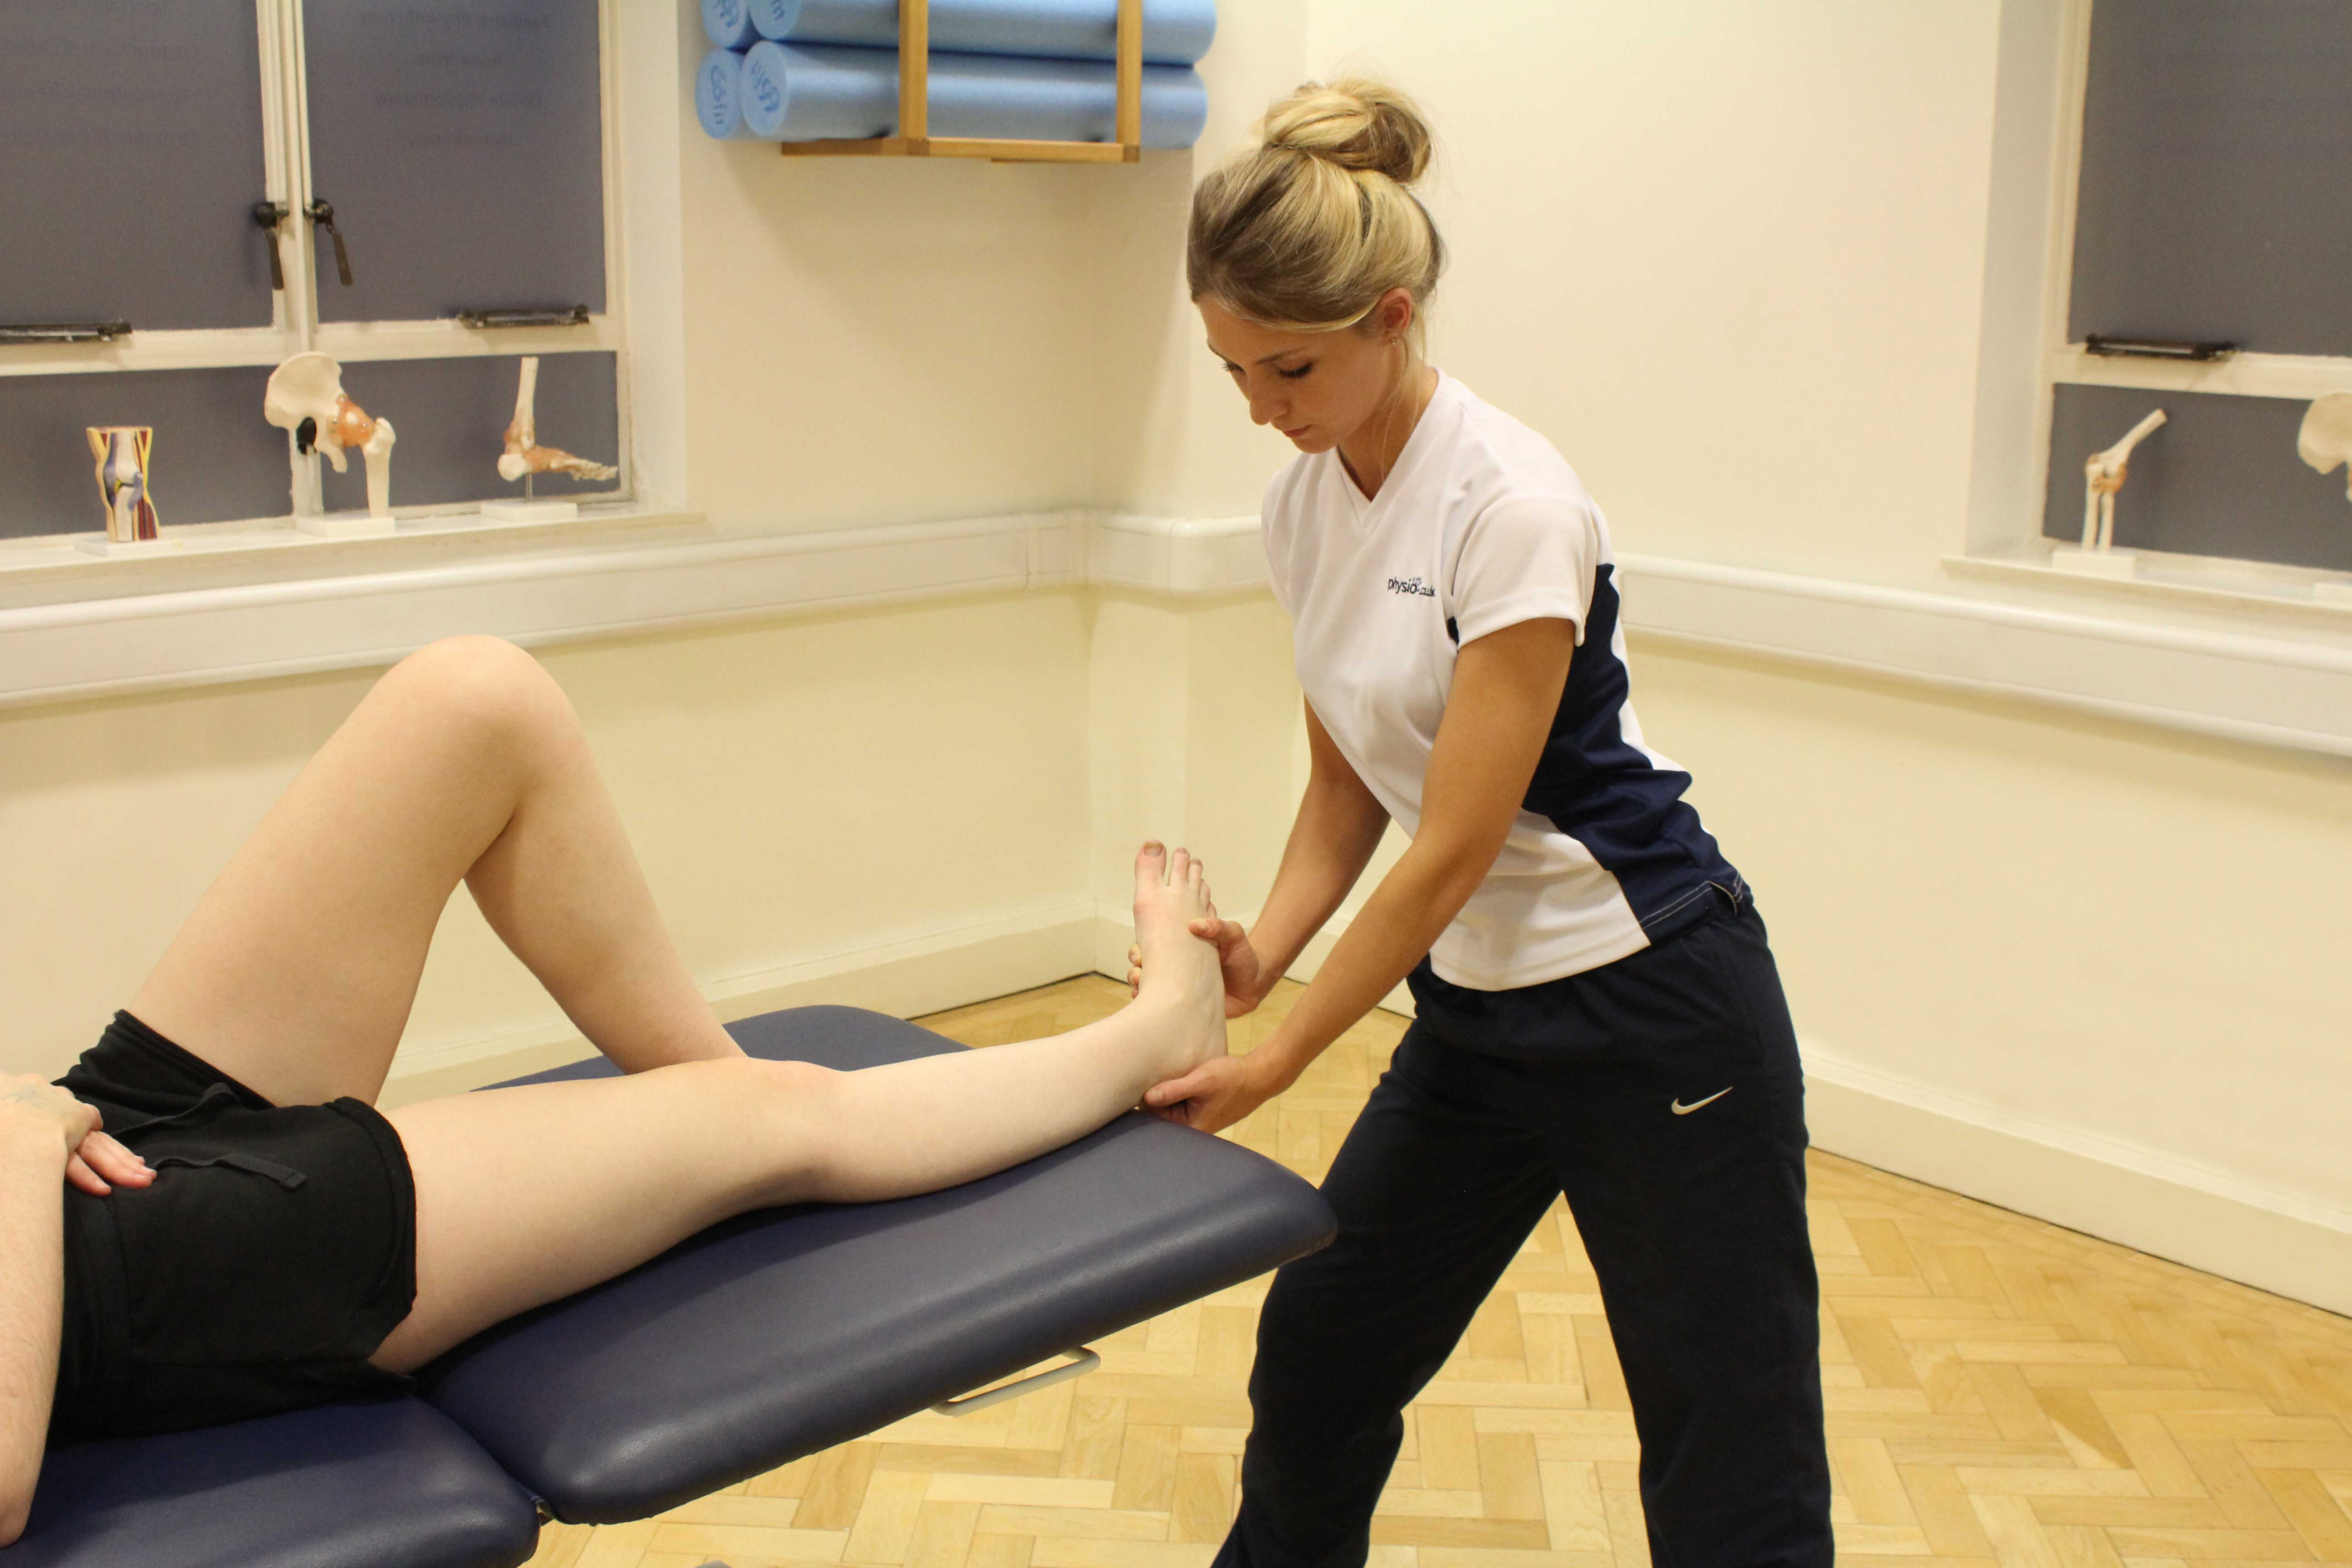 Massage of the foot and ankle by a specilaist massage therapist